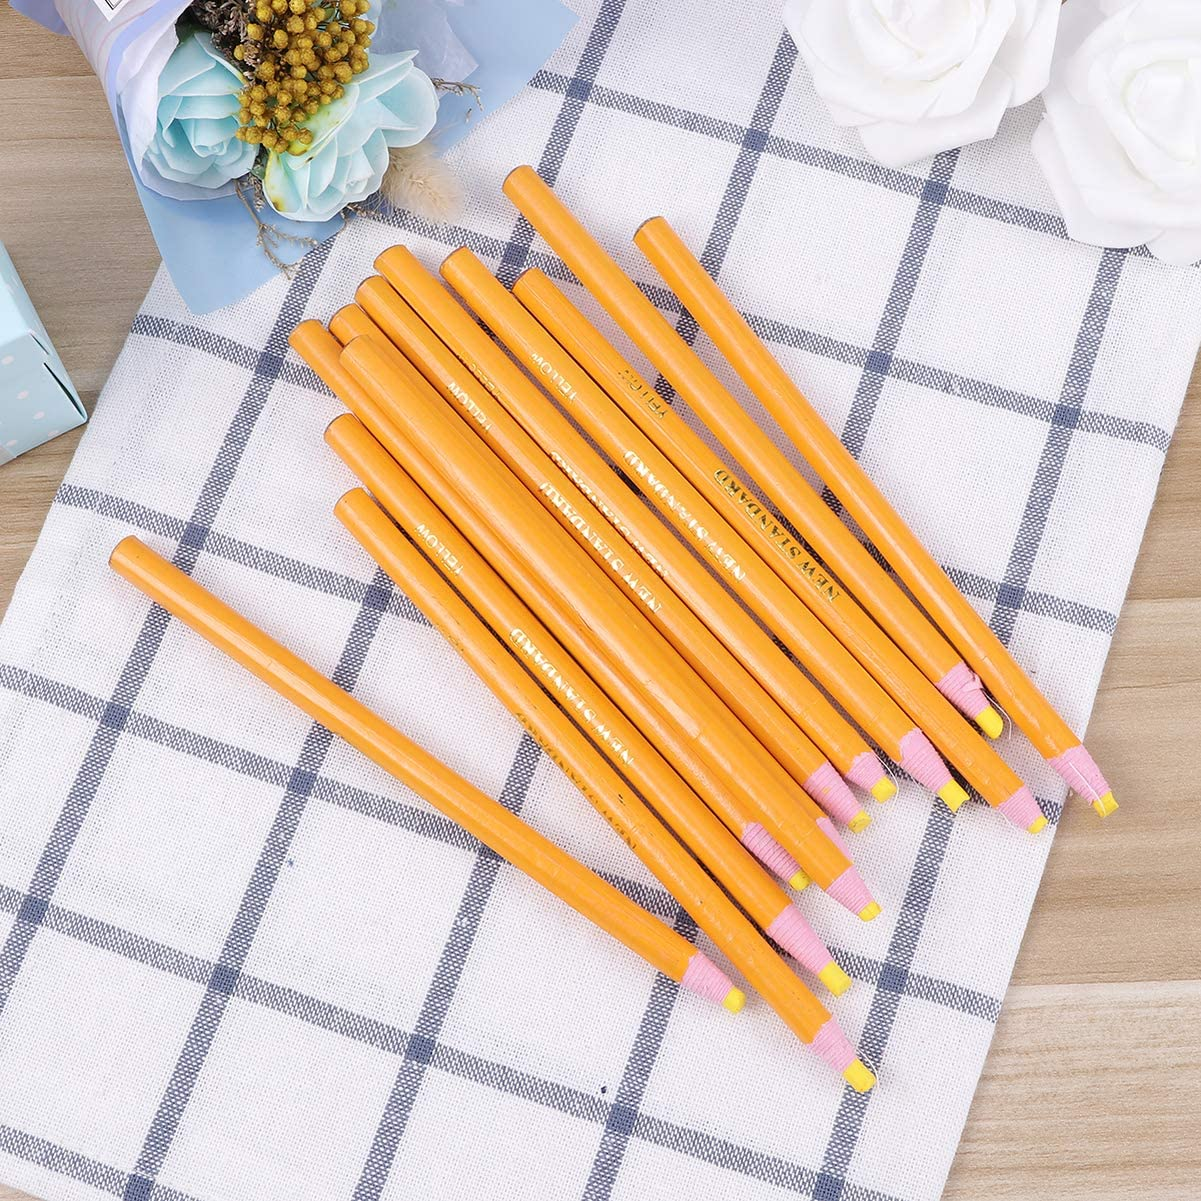 Toyvian Peel off China Marker Wax Pen Grease Pencil for Metal Cloth Wood Leather Paper Glass 12PCS Yellow